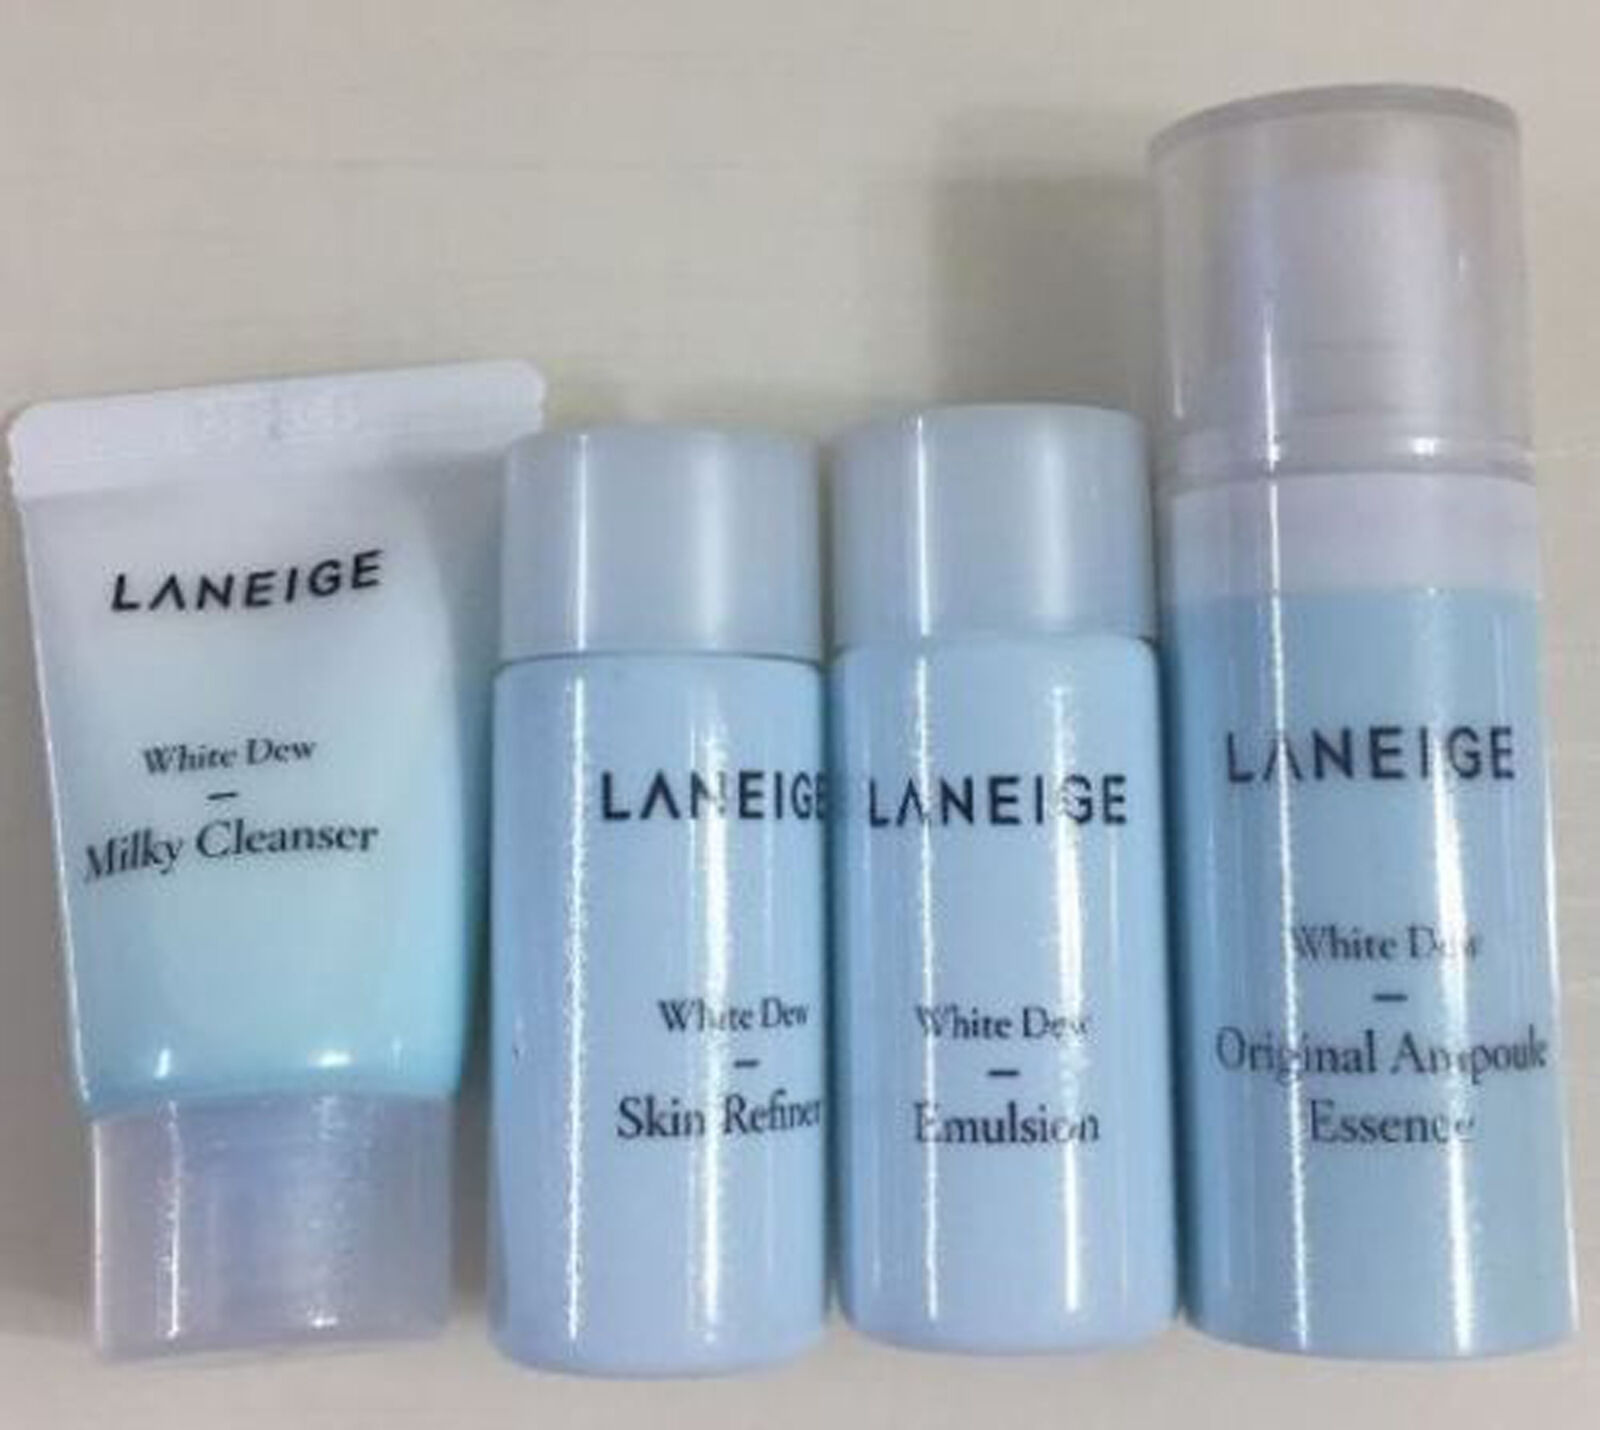 Korea Mall Laneige White Dew Milky Trial Kit 4items Ebay Plus Renew 4 Items Norton Secured Powered By Verisign